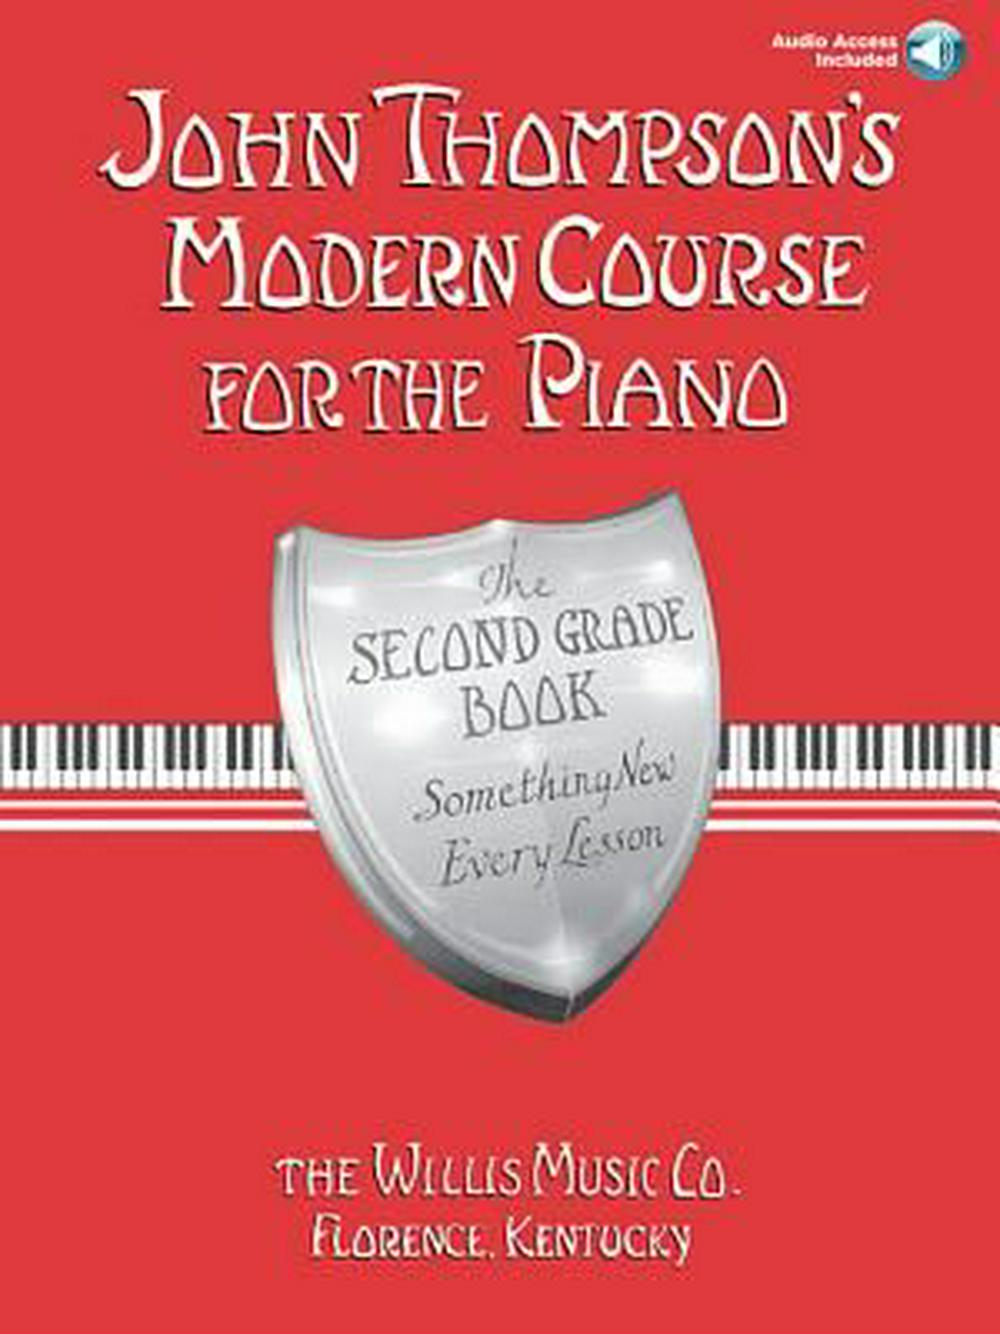 John Thompson's Modern Course for the Piano: The Second Grade Book: Something New Every Lesson [With CD]